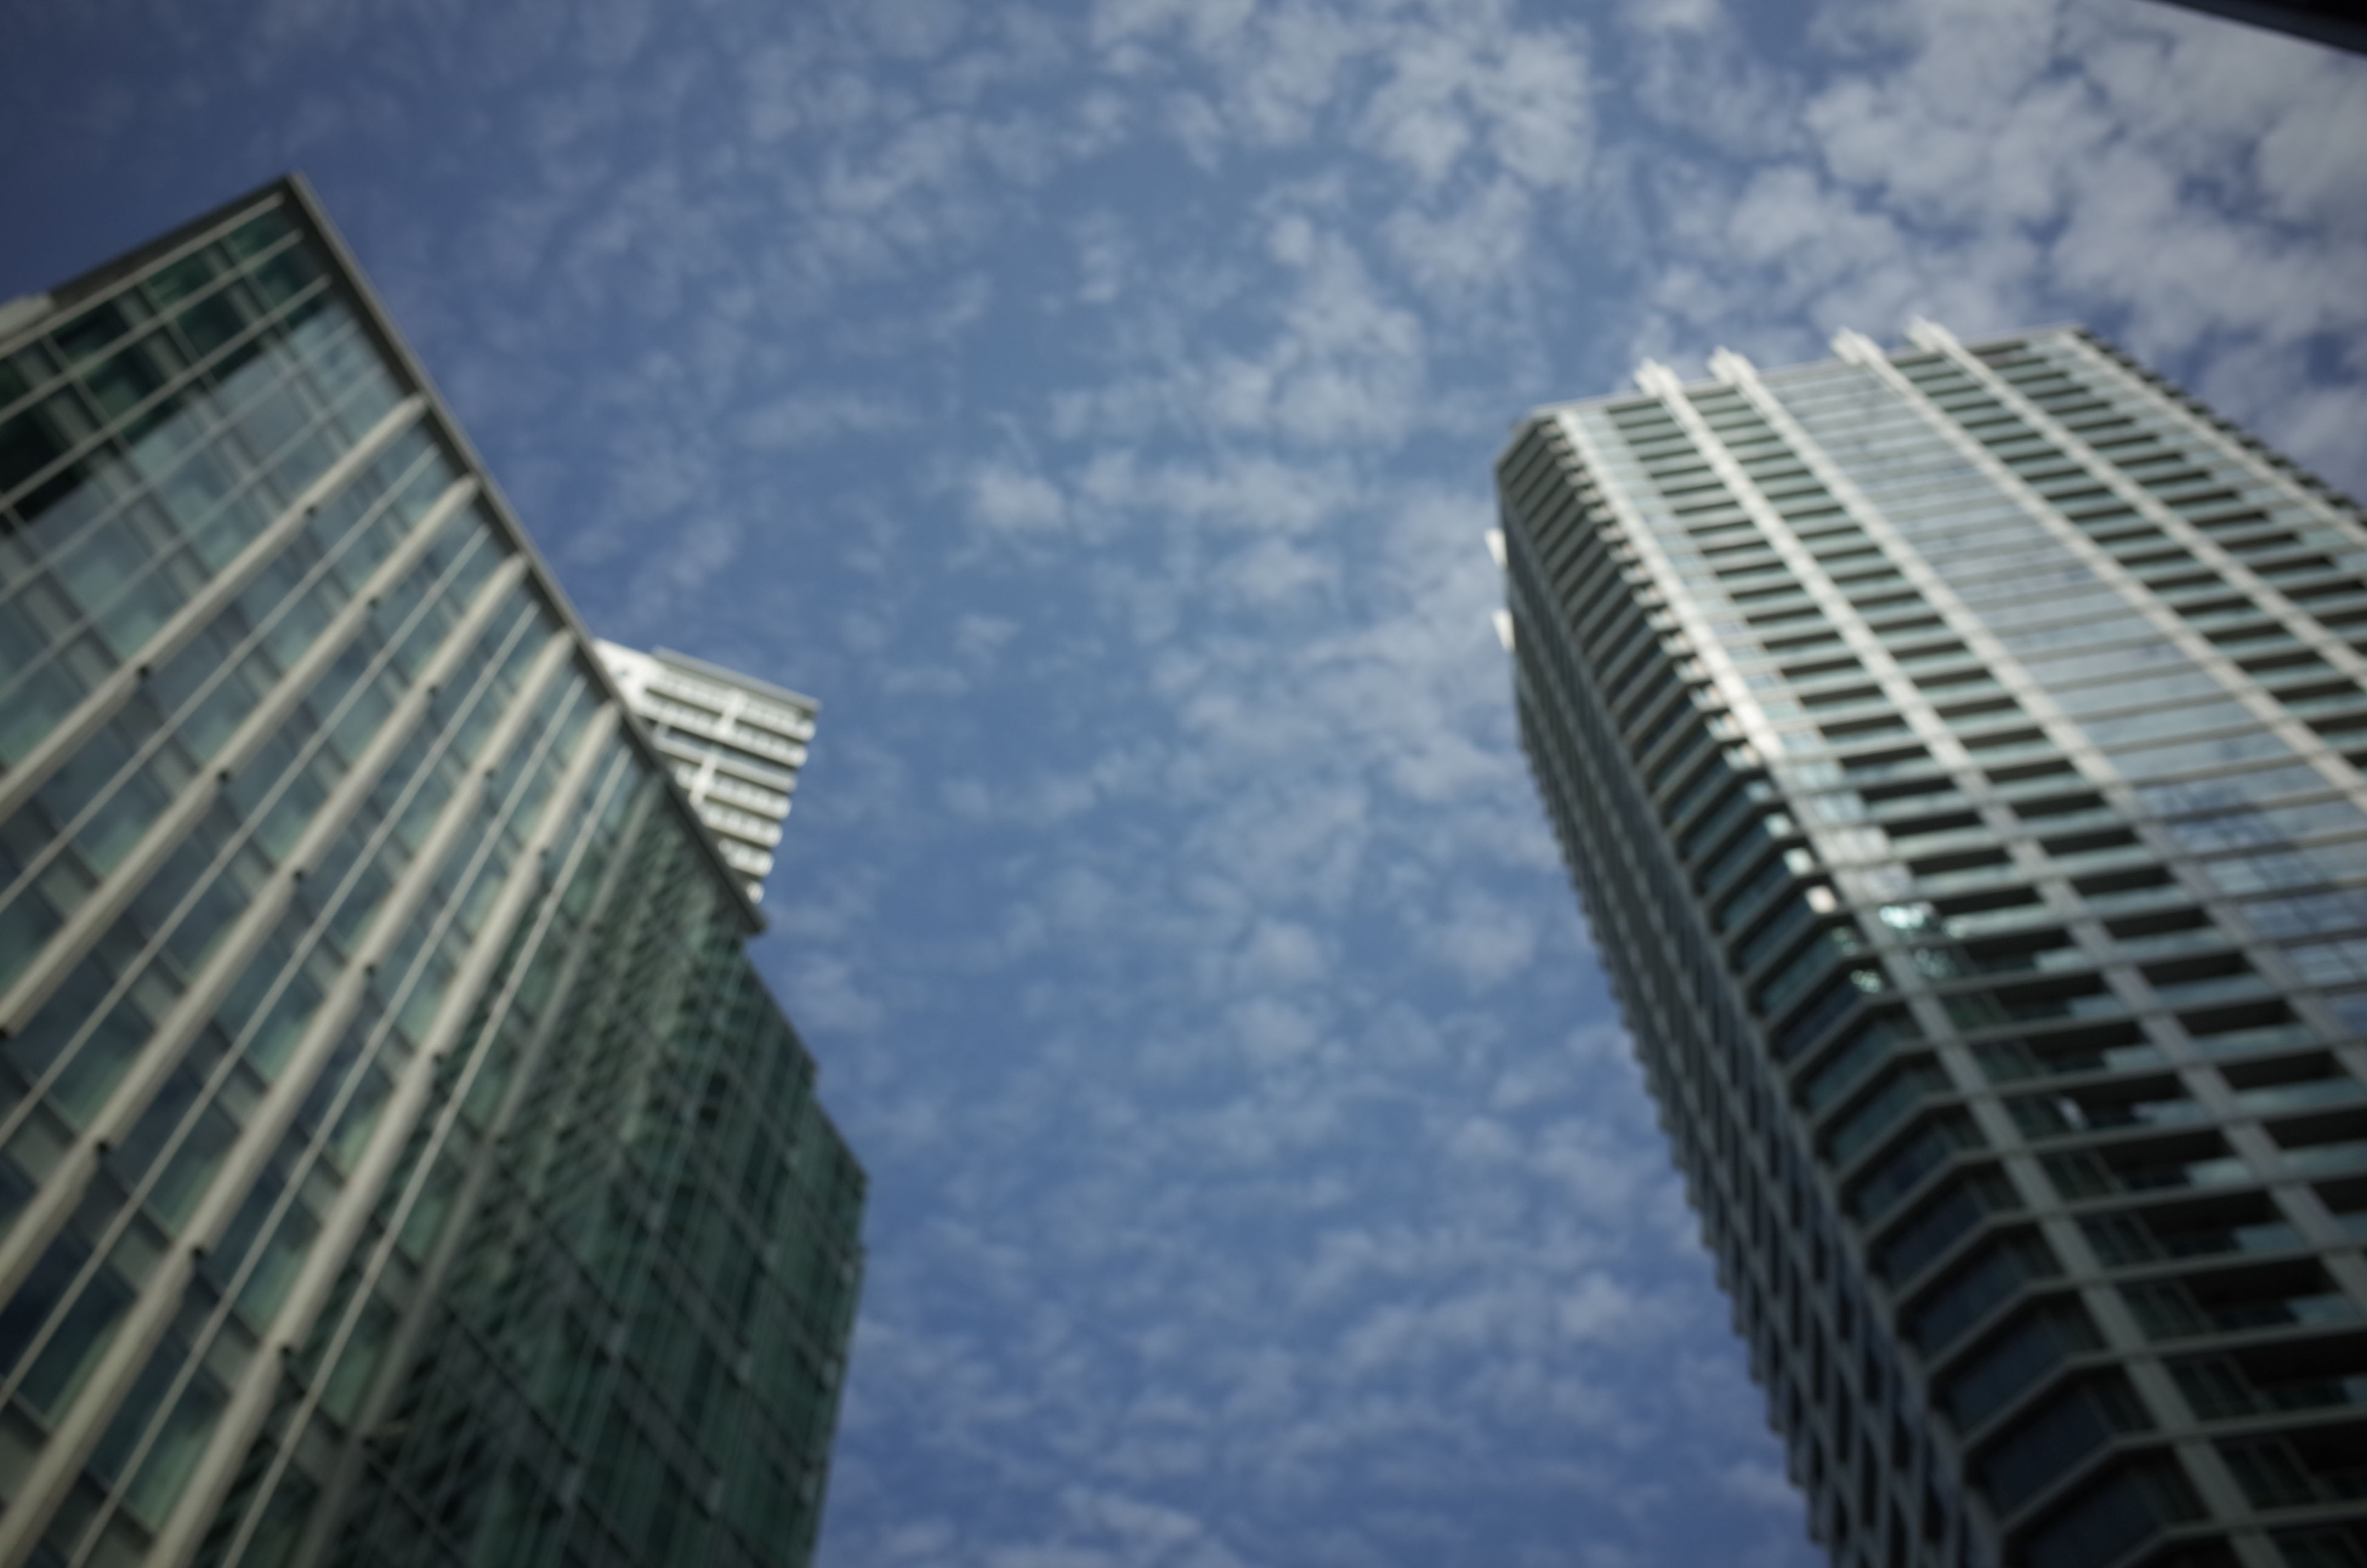 building exterior, architecture, low angle view, built structure, modern, sky, skyscraper, office building, city, tall - high, cloud - sky, tower, building, reflection, glass - material, cloud, cloudy, directly below, tall, day